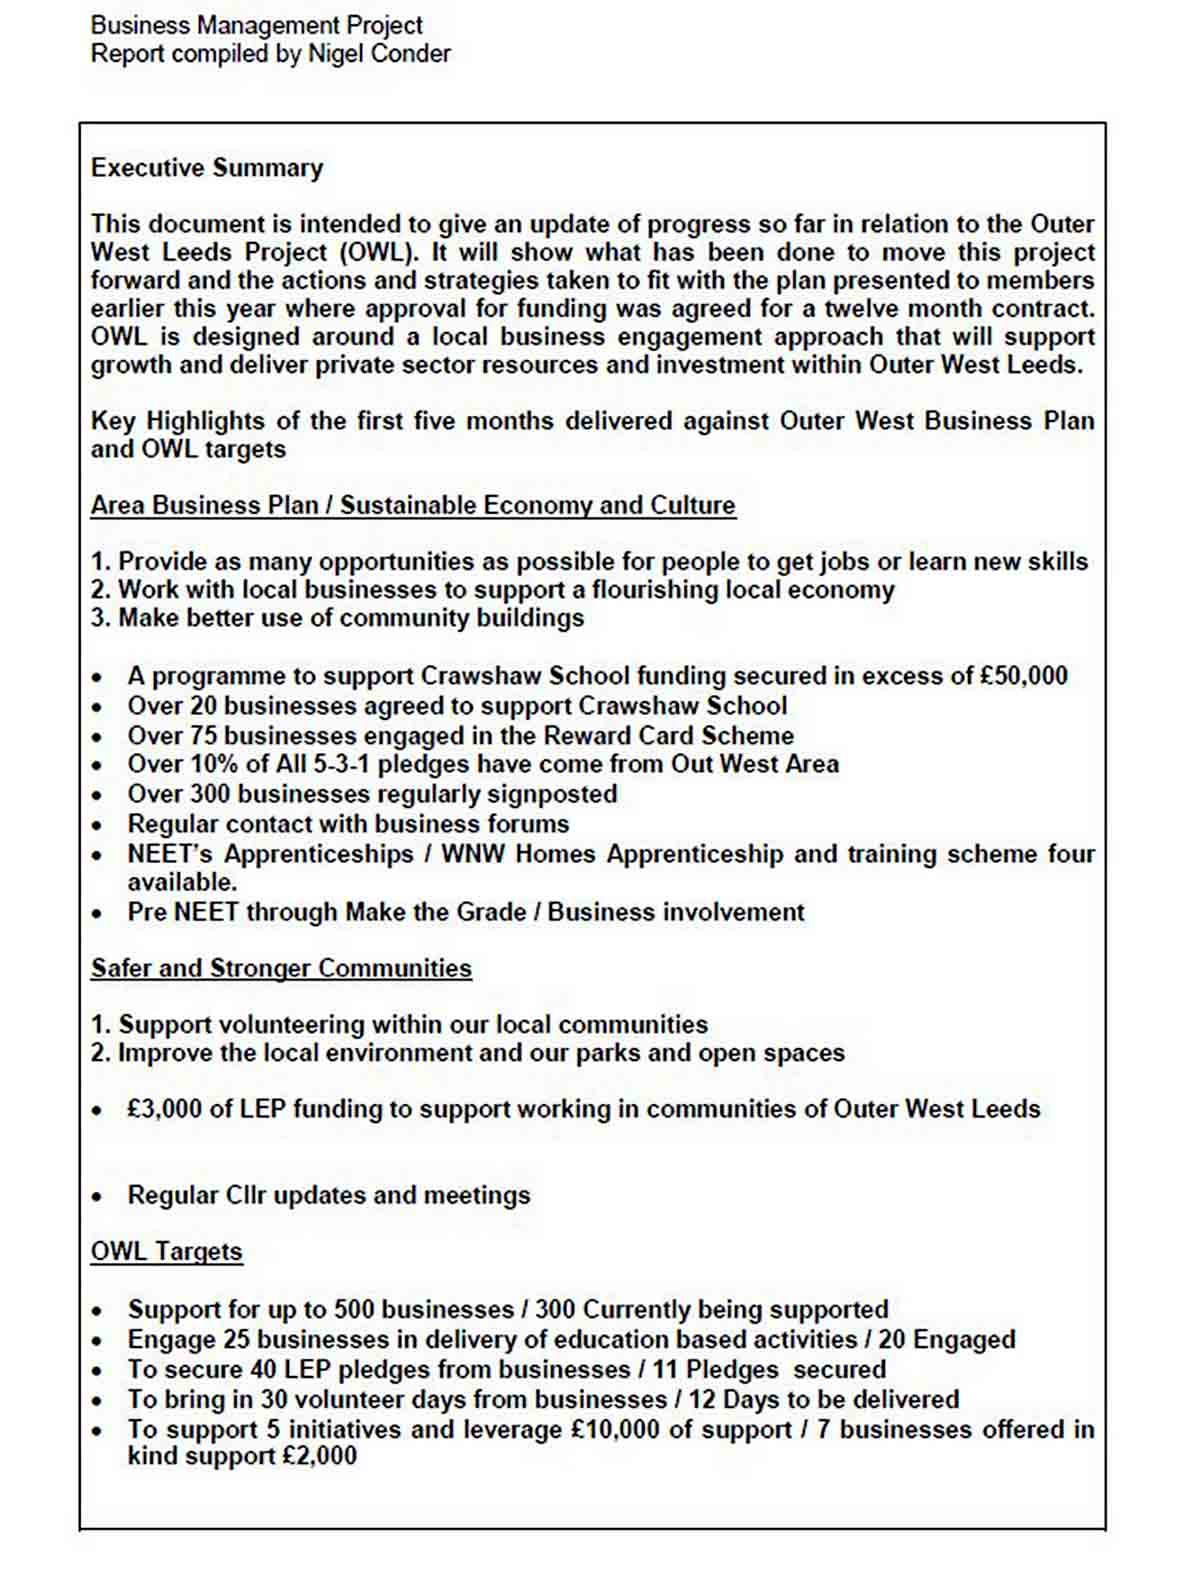 Business Management Project Report Template sample